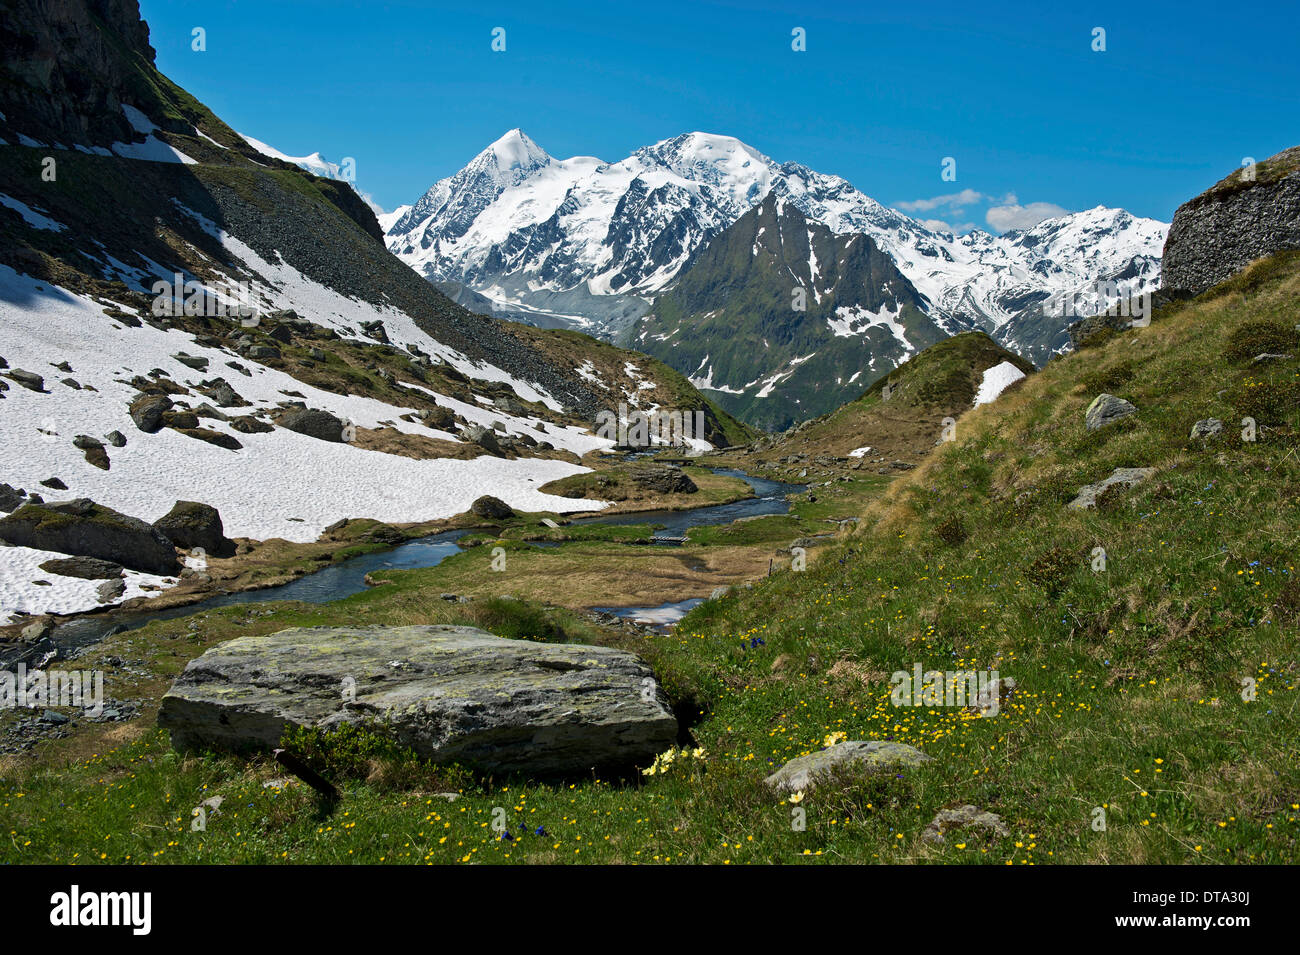 Valley with the Louvie stream in an alpine landscape with the peaks of Combin de Corbassière Mountain, left - Stock Image